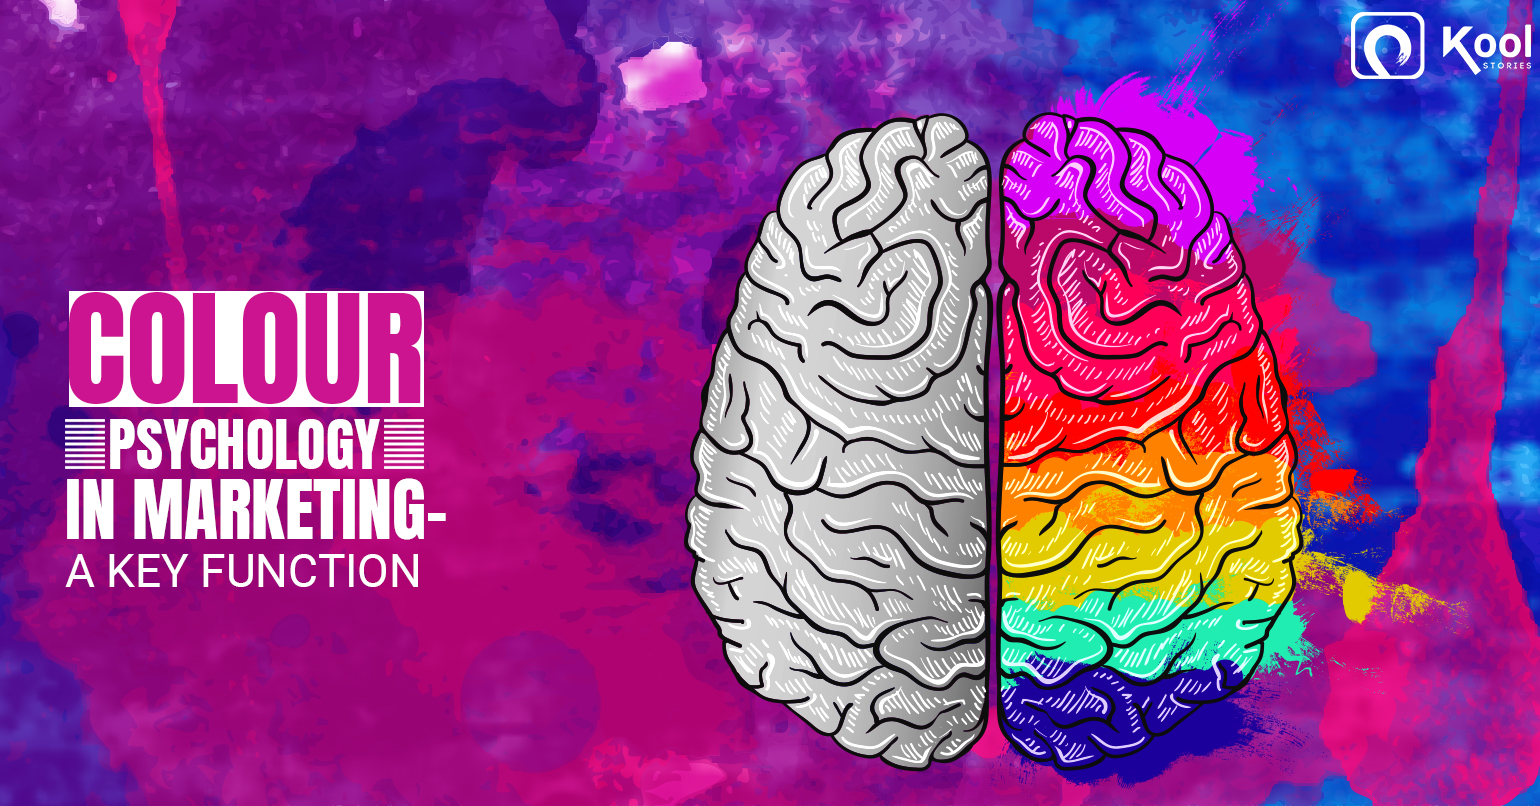 Colour Psychology in Marketing- A Key Function